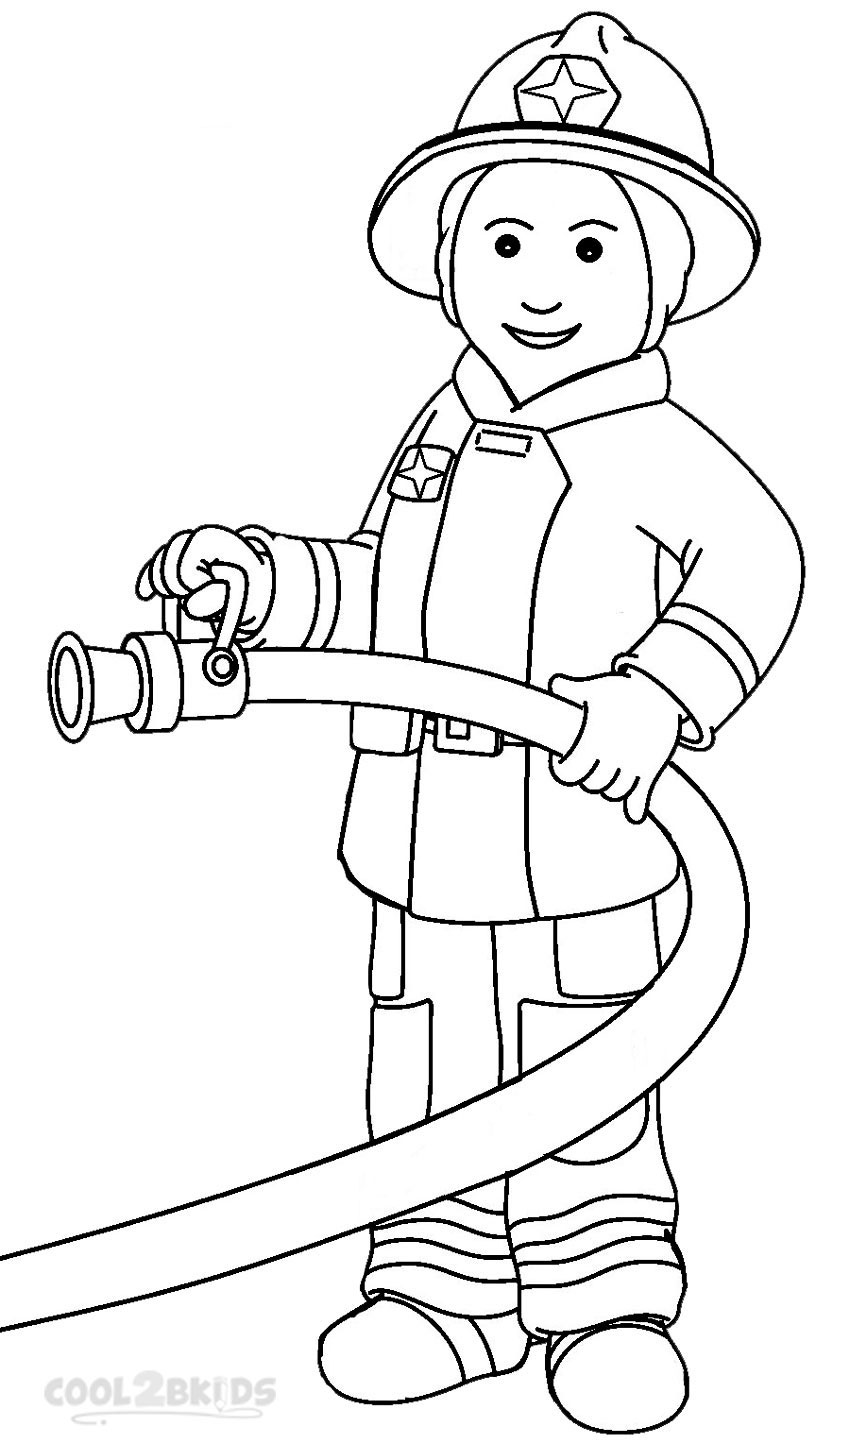 coloring book outline images doctor coloring pages to download and print for free images book coloring outline